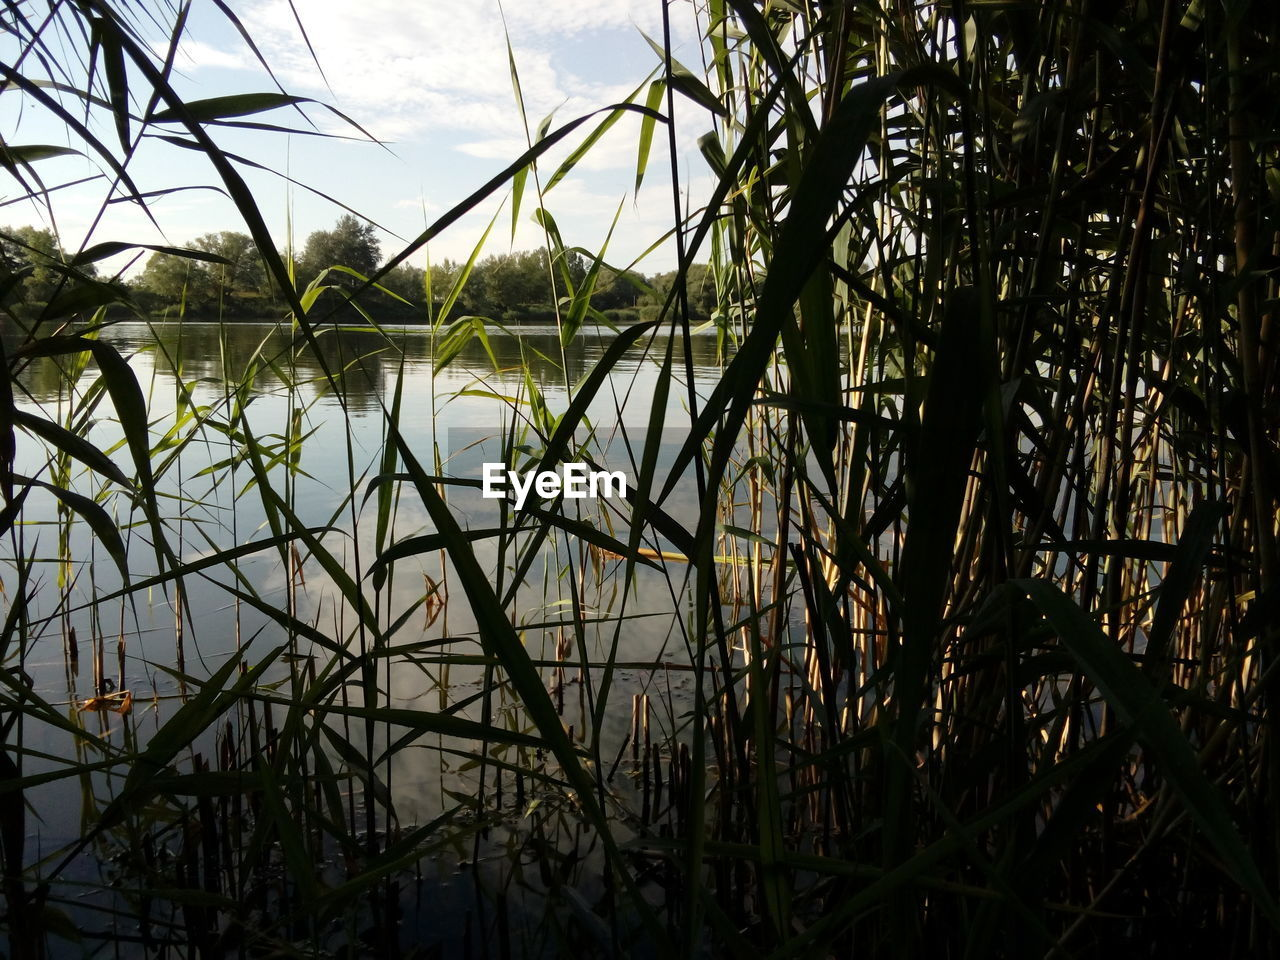 plant, no people, nature, growth, sky, tranquility, water, lake, grass, beauty in nature, day, reflection, tree, outdoors, land, tranquil scene, non-urban scene, scenics - nature, standing water, blade of grass